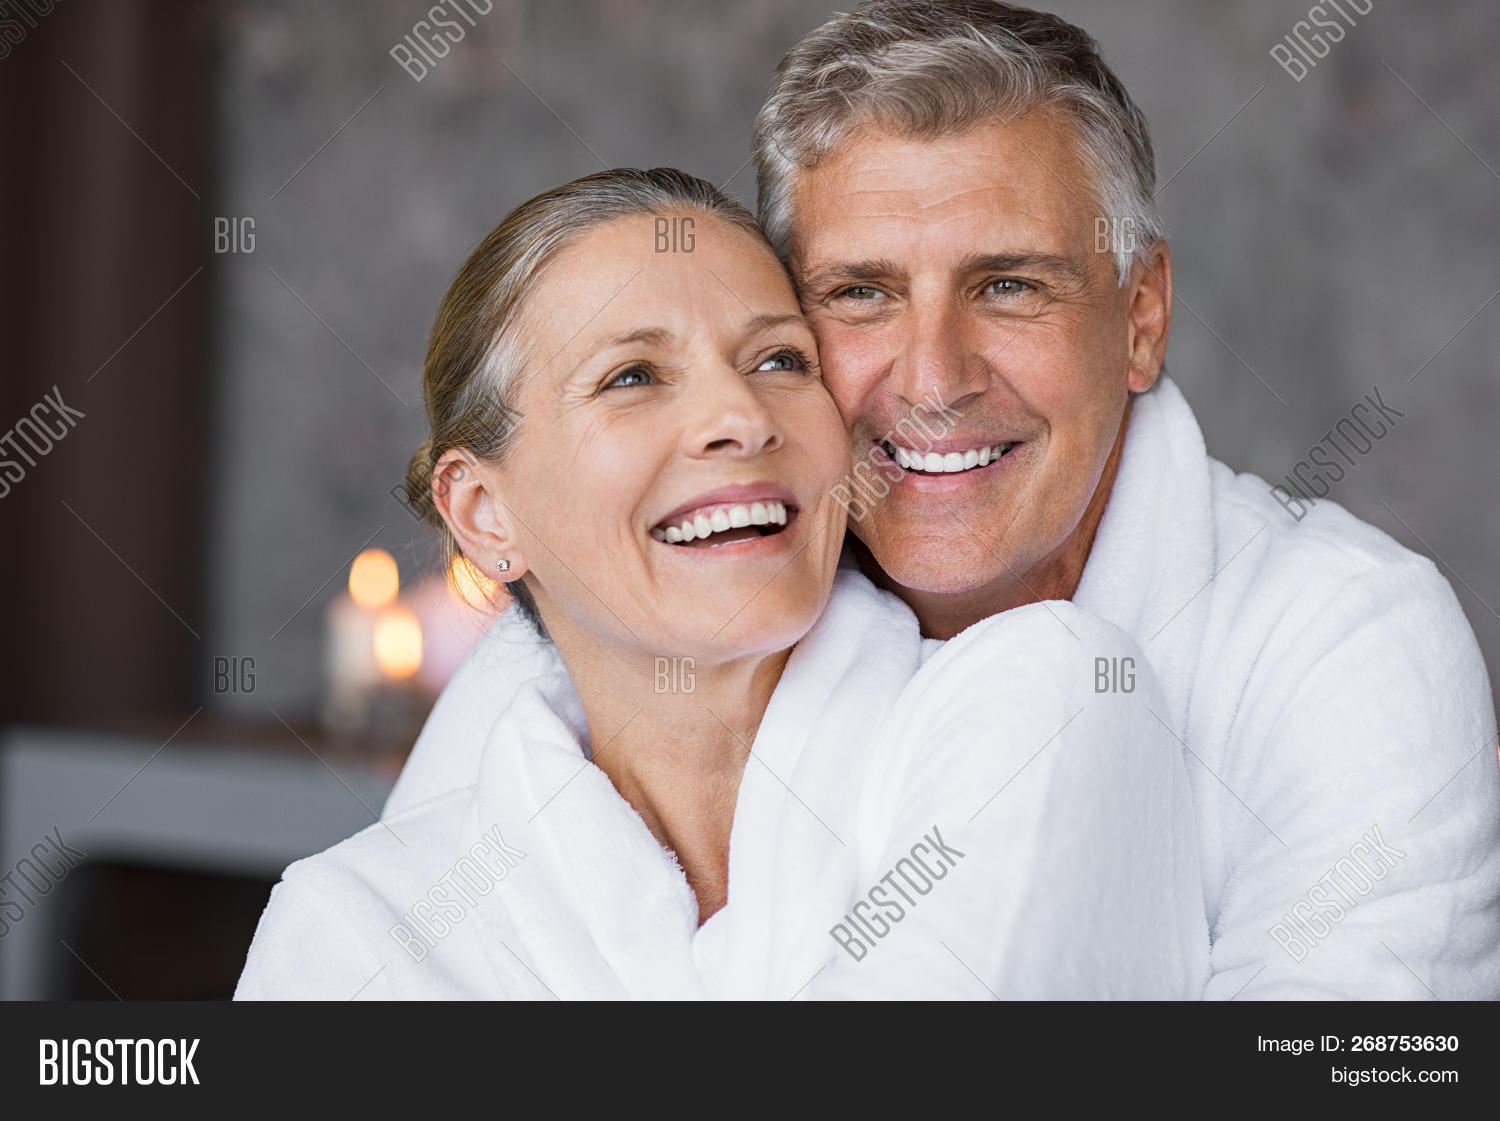 Smiling husband embracing cheerful wife from behind at spa. Laughing mature couple enjoying a romant